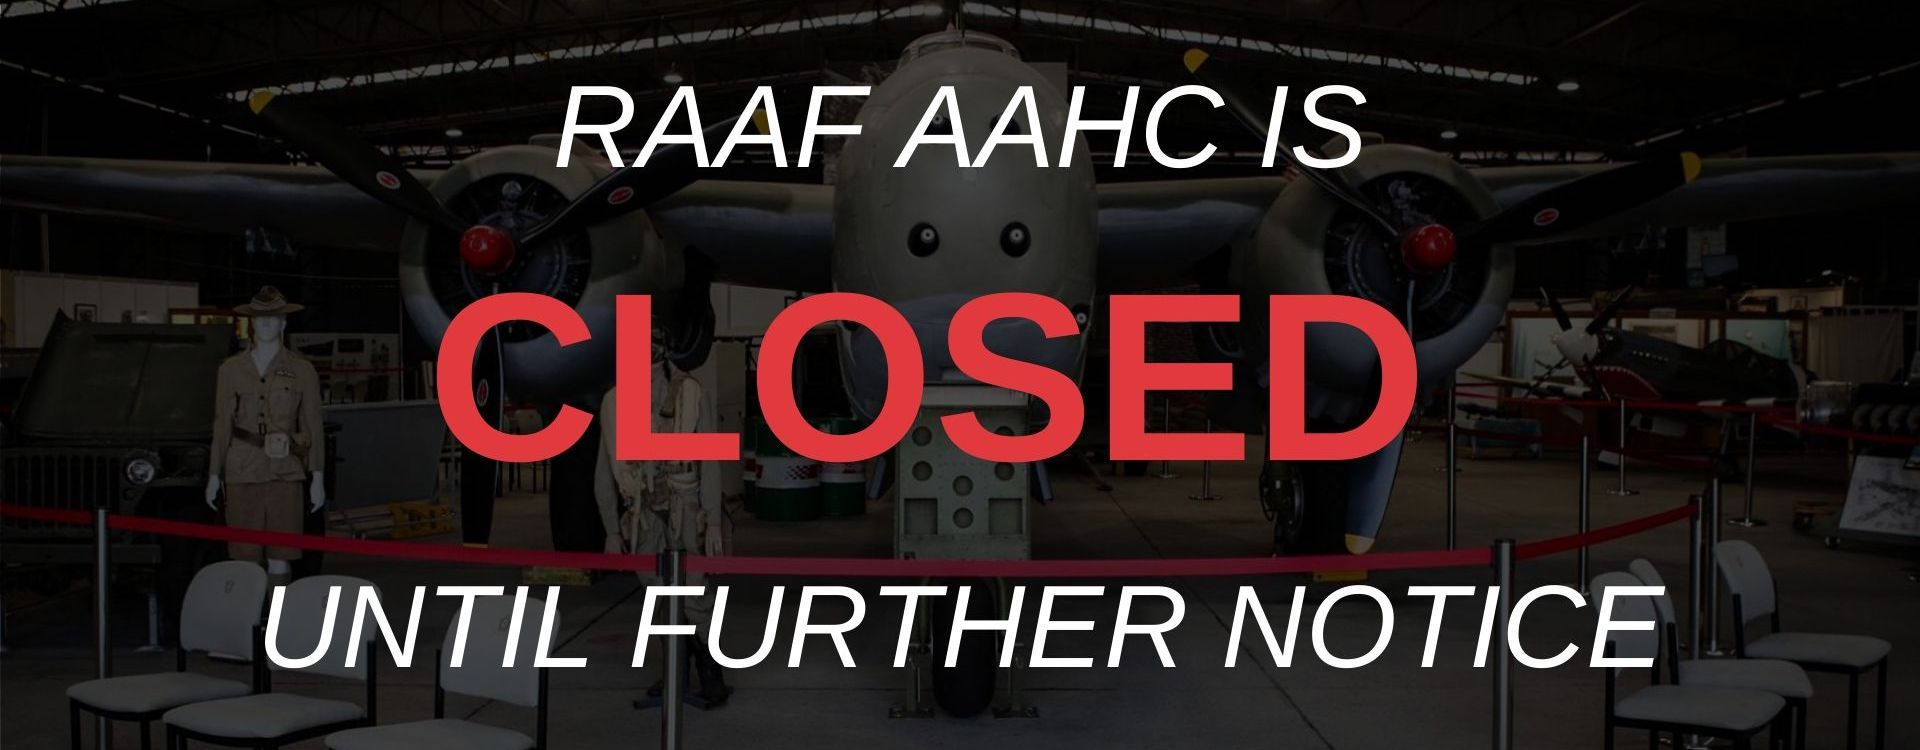 RAAF AAHC - Closed Notice